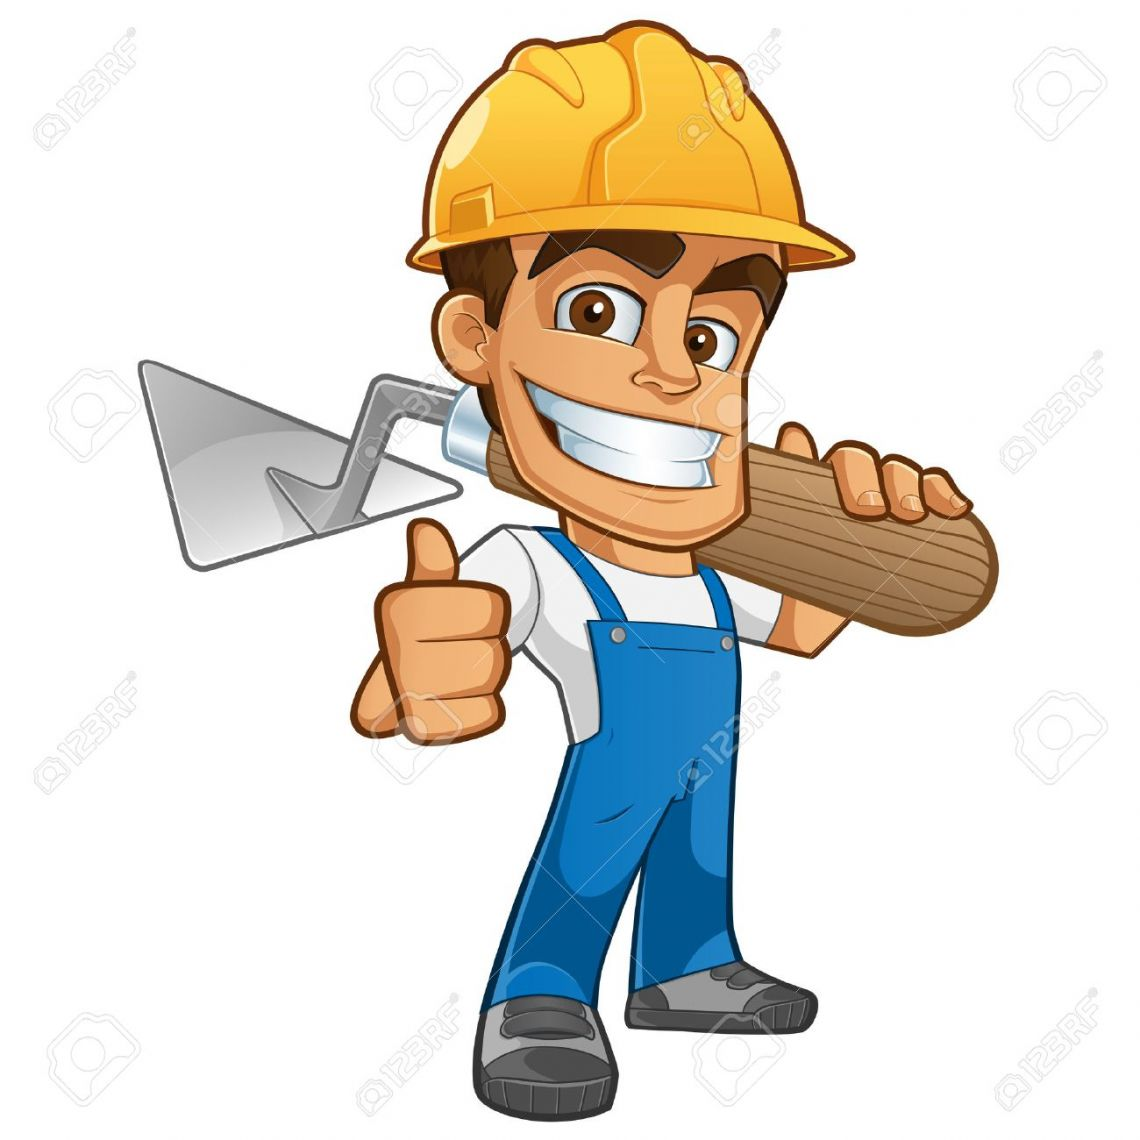 44058528 sympathetic bricklayer dressed in work clothes he wears a helmet and trowel